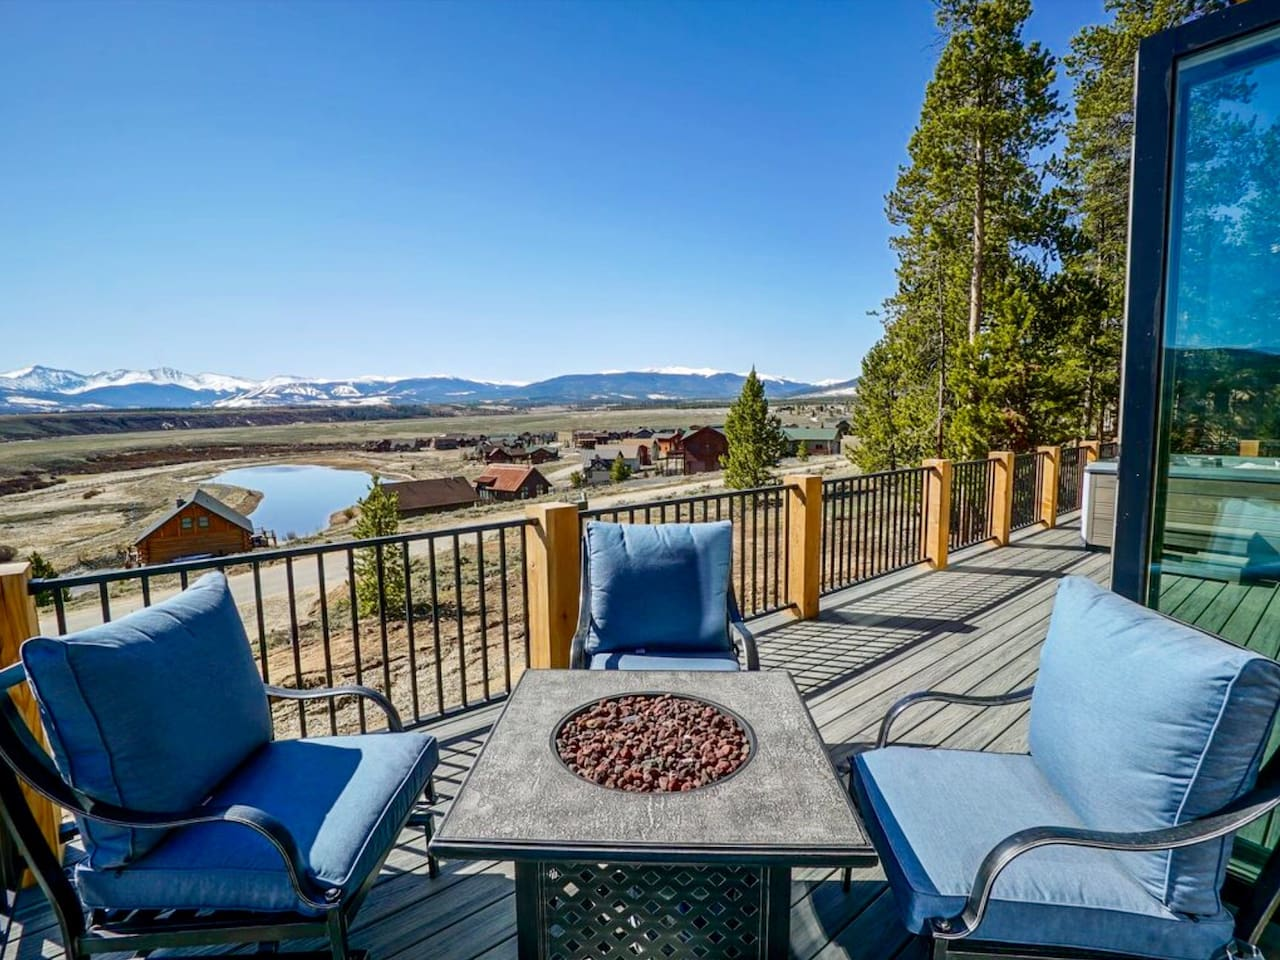 Your own resort in every season to take in the Heavenly Views overlooking the Lake and Winter Park Resort